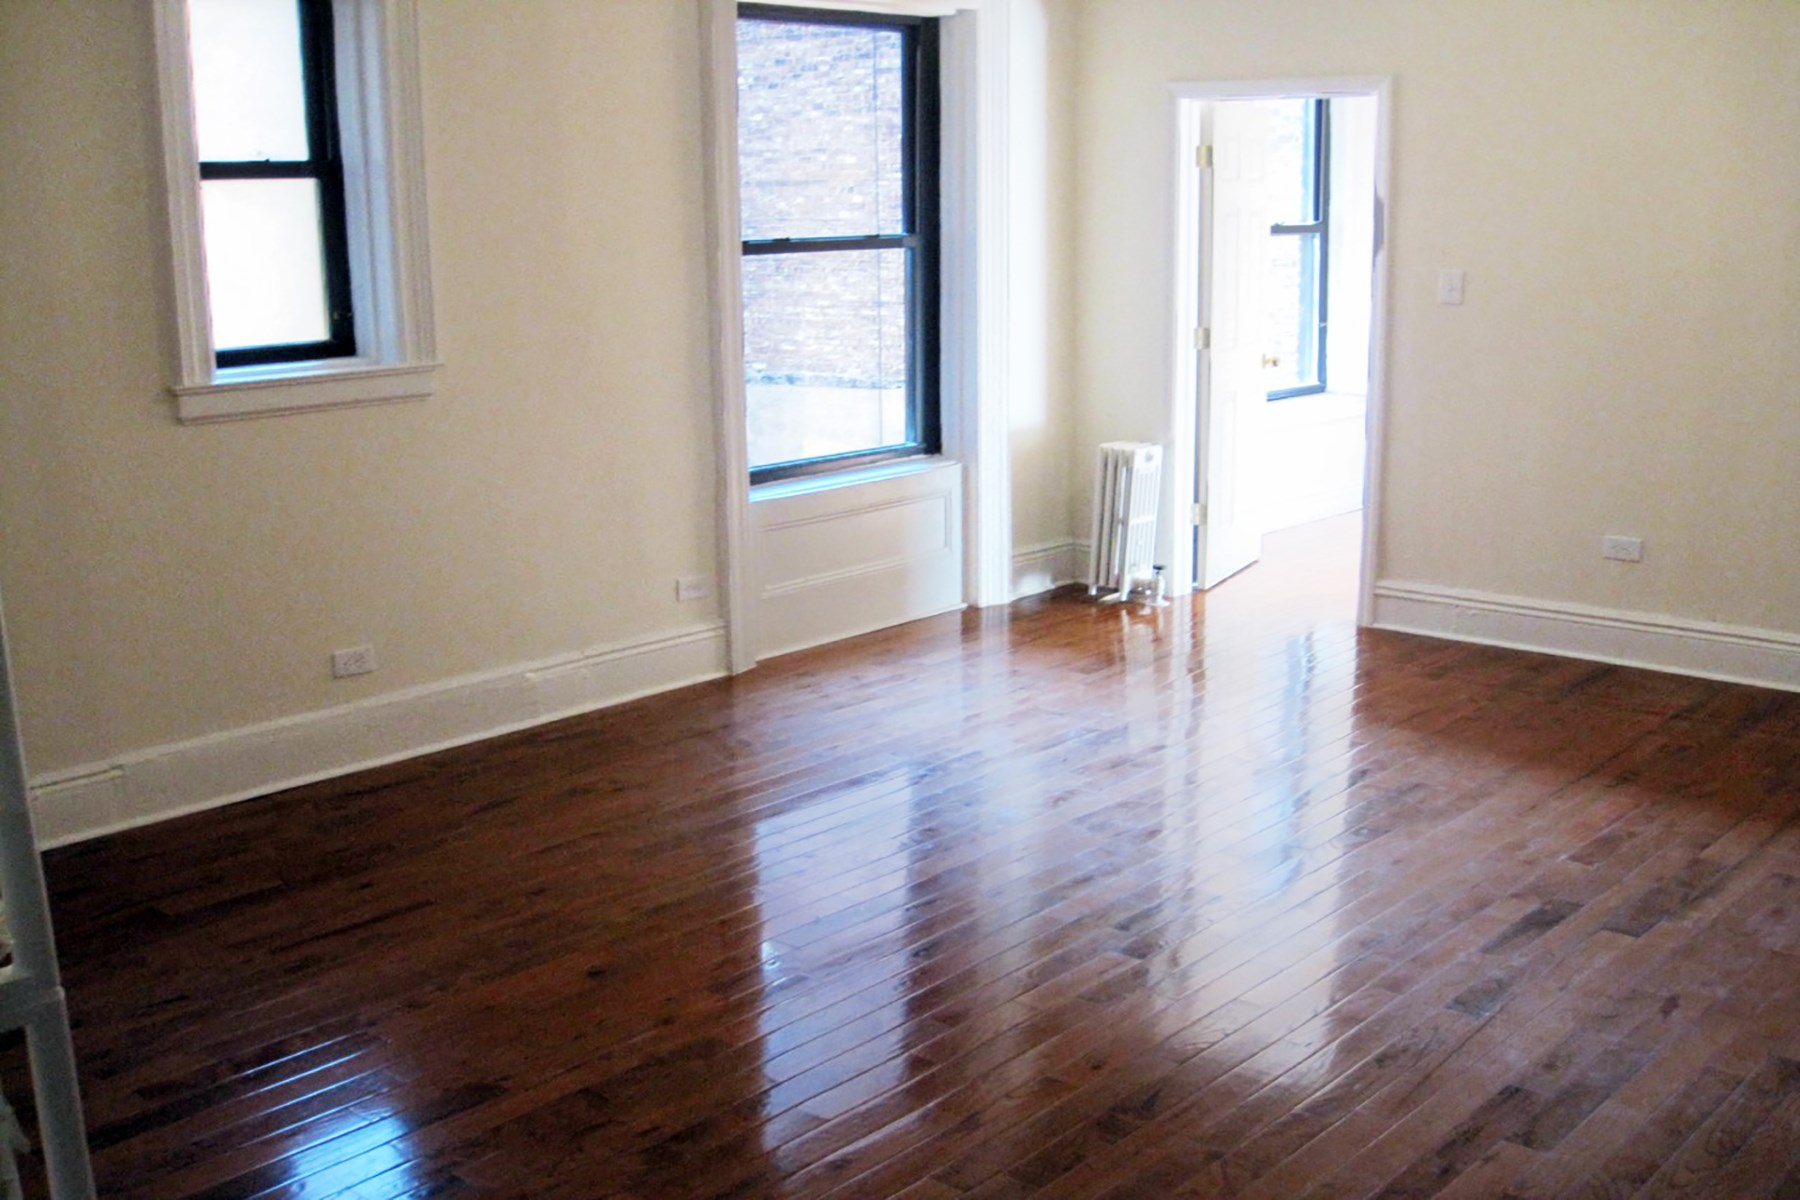 Property Of 300 West 107th Street, Apt. 4C